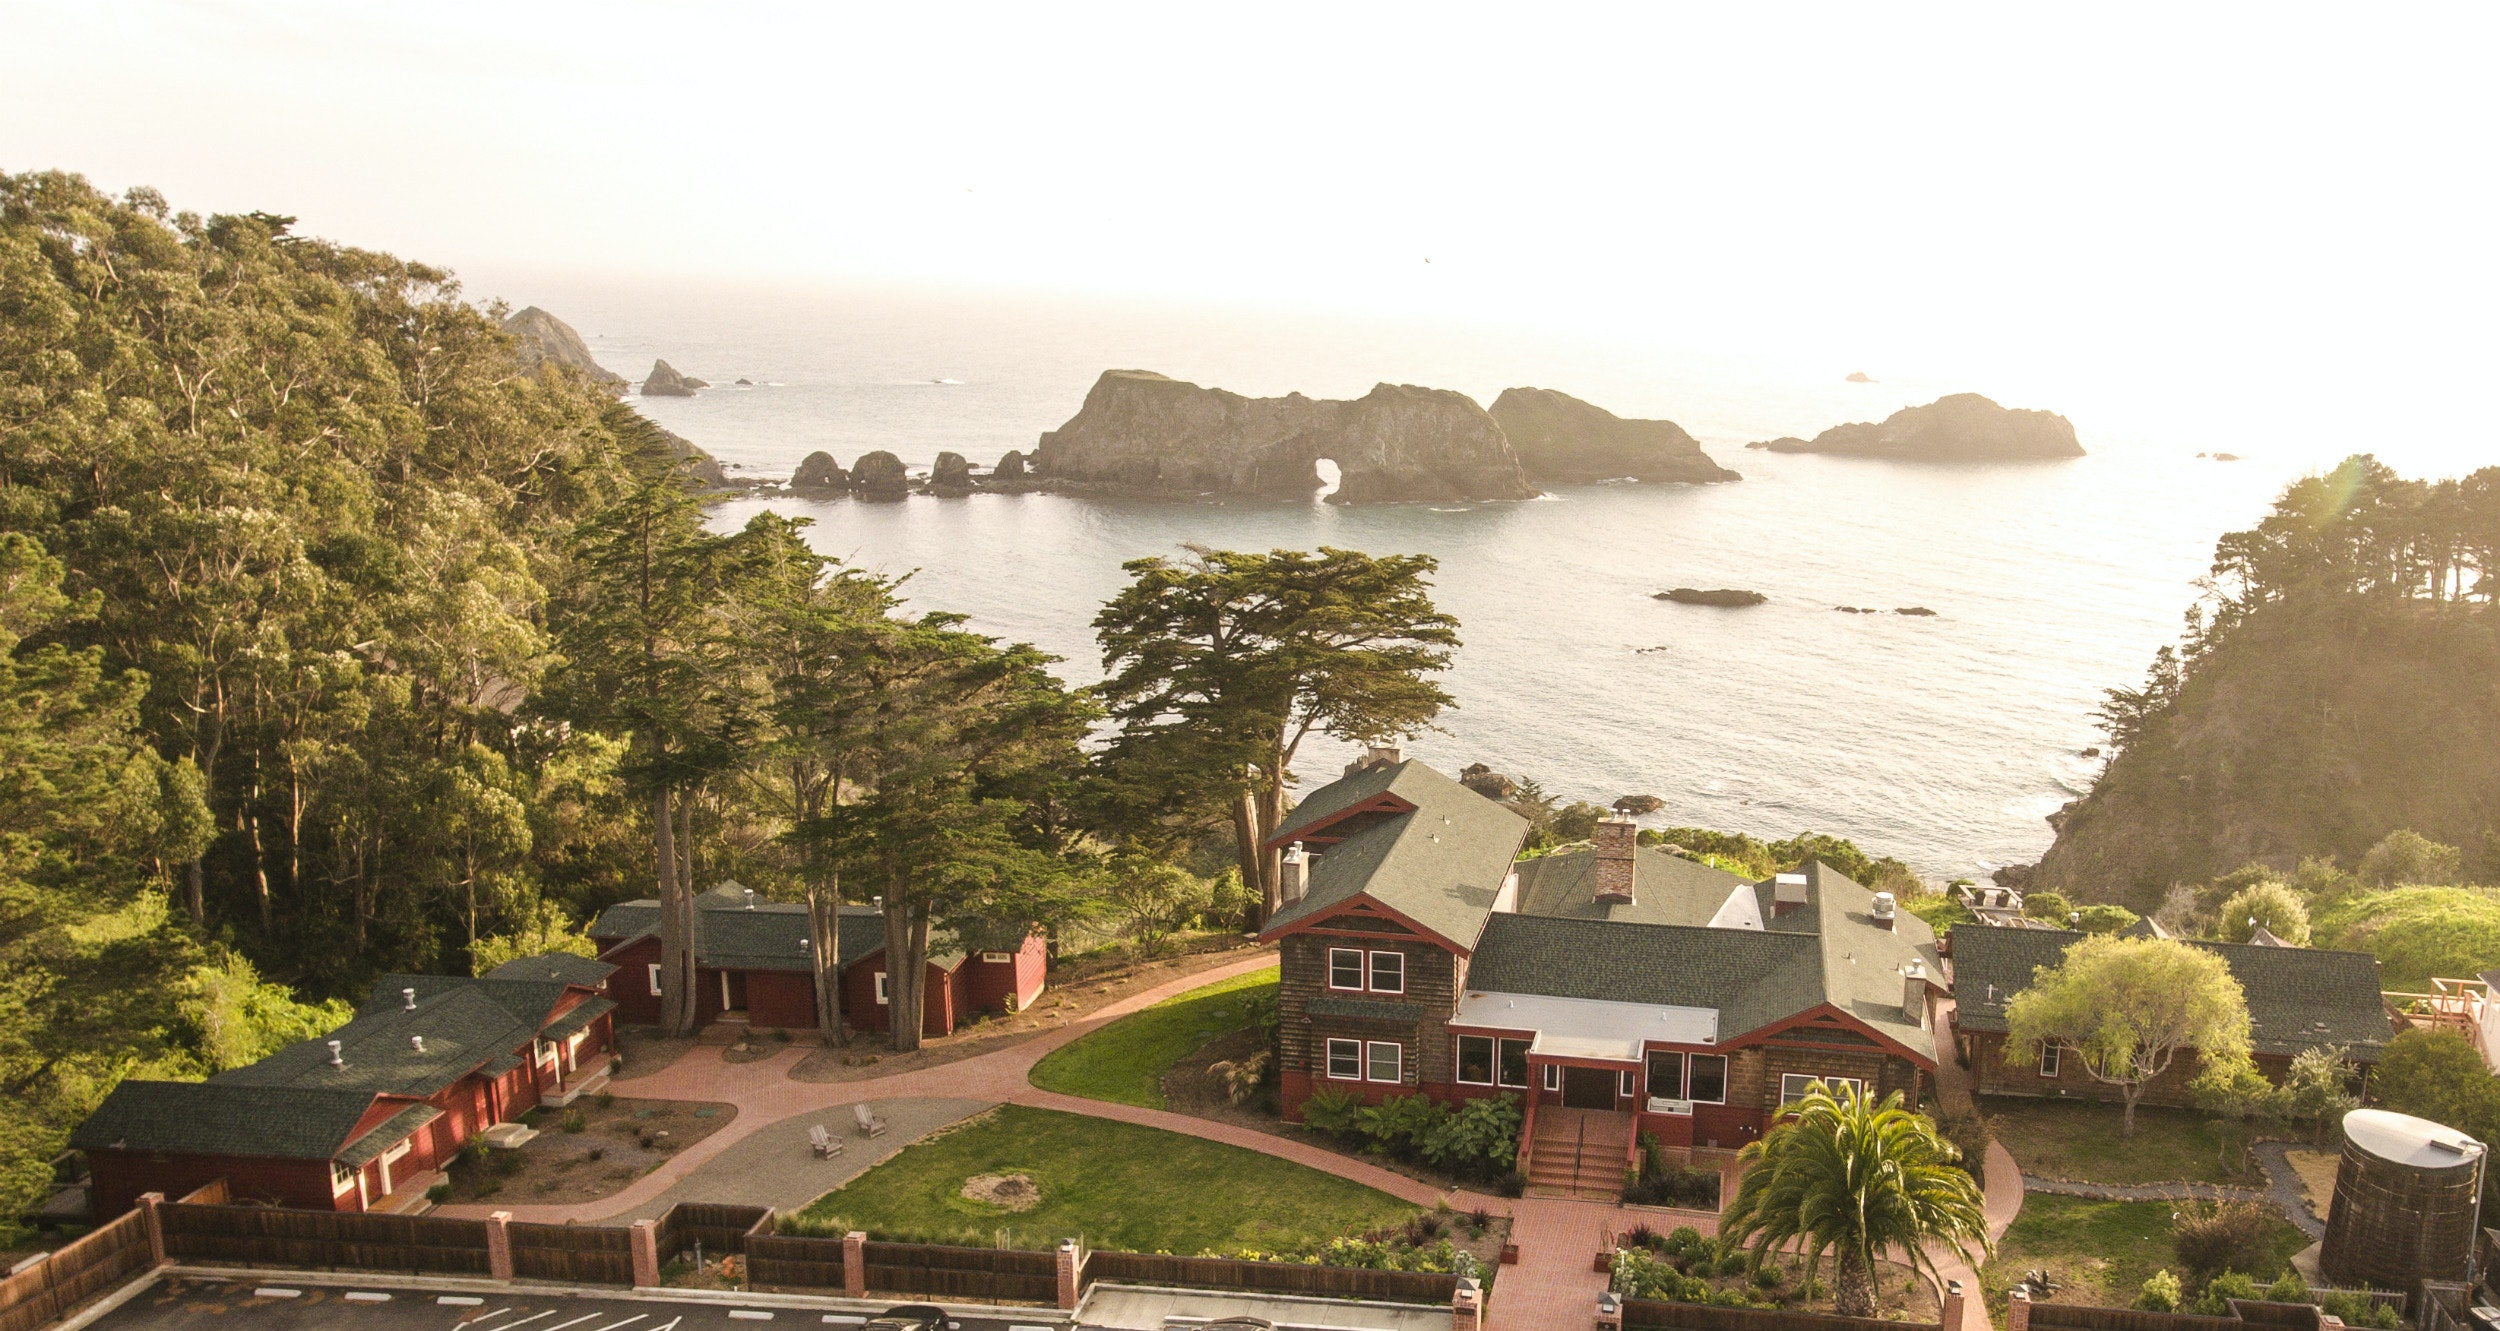 Elk's atmospheric Harbor House Inn sits on a cove overlooking Wharf Rock and Casket Rock.